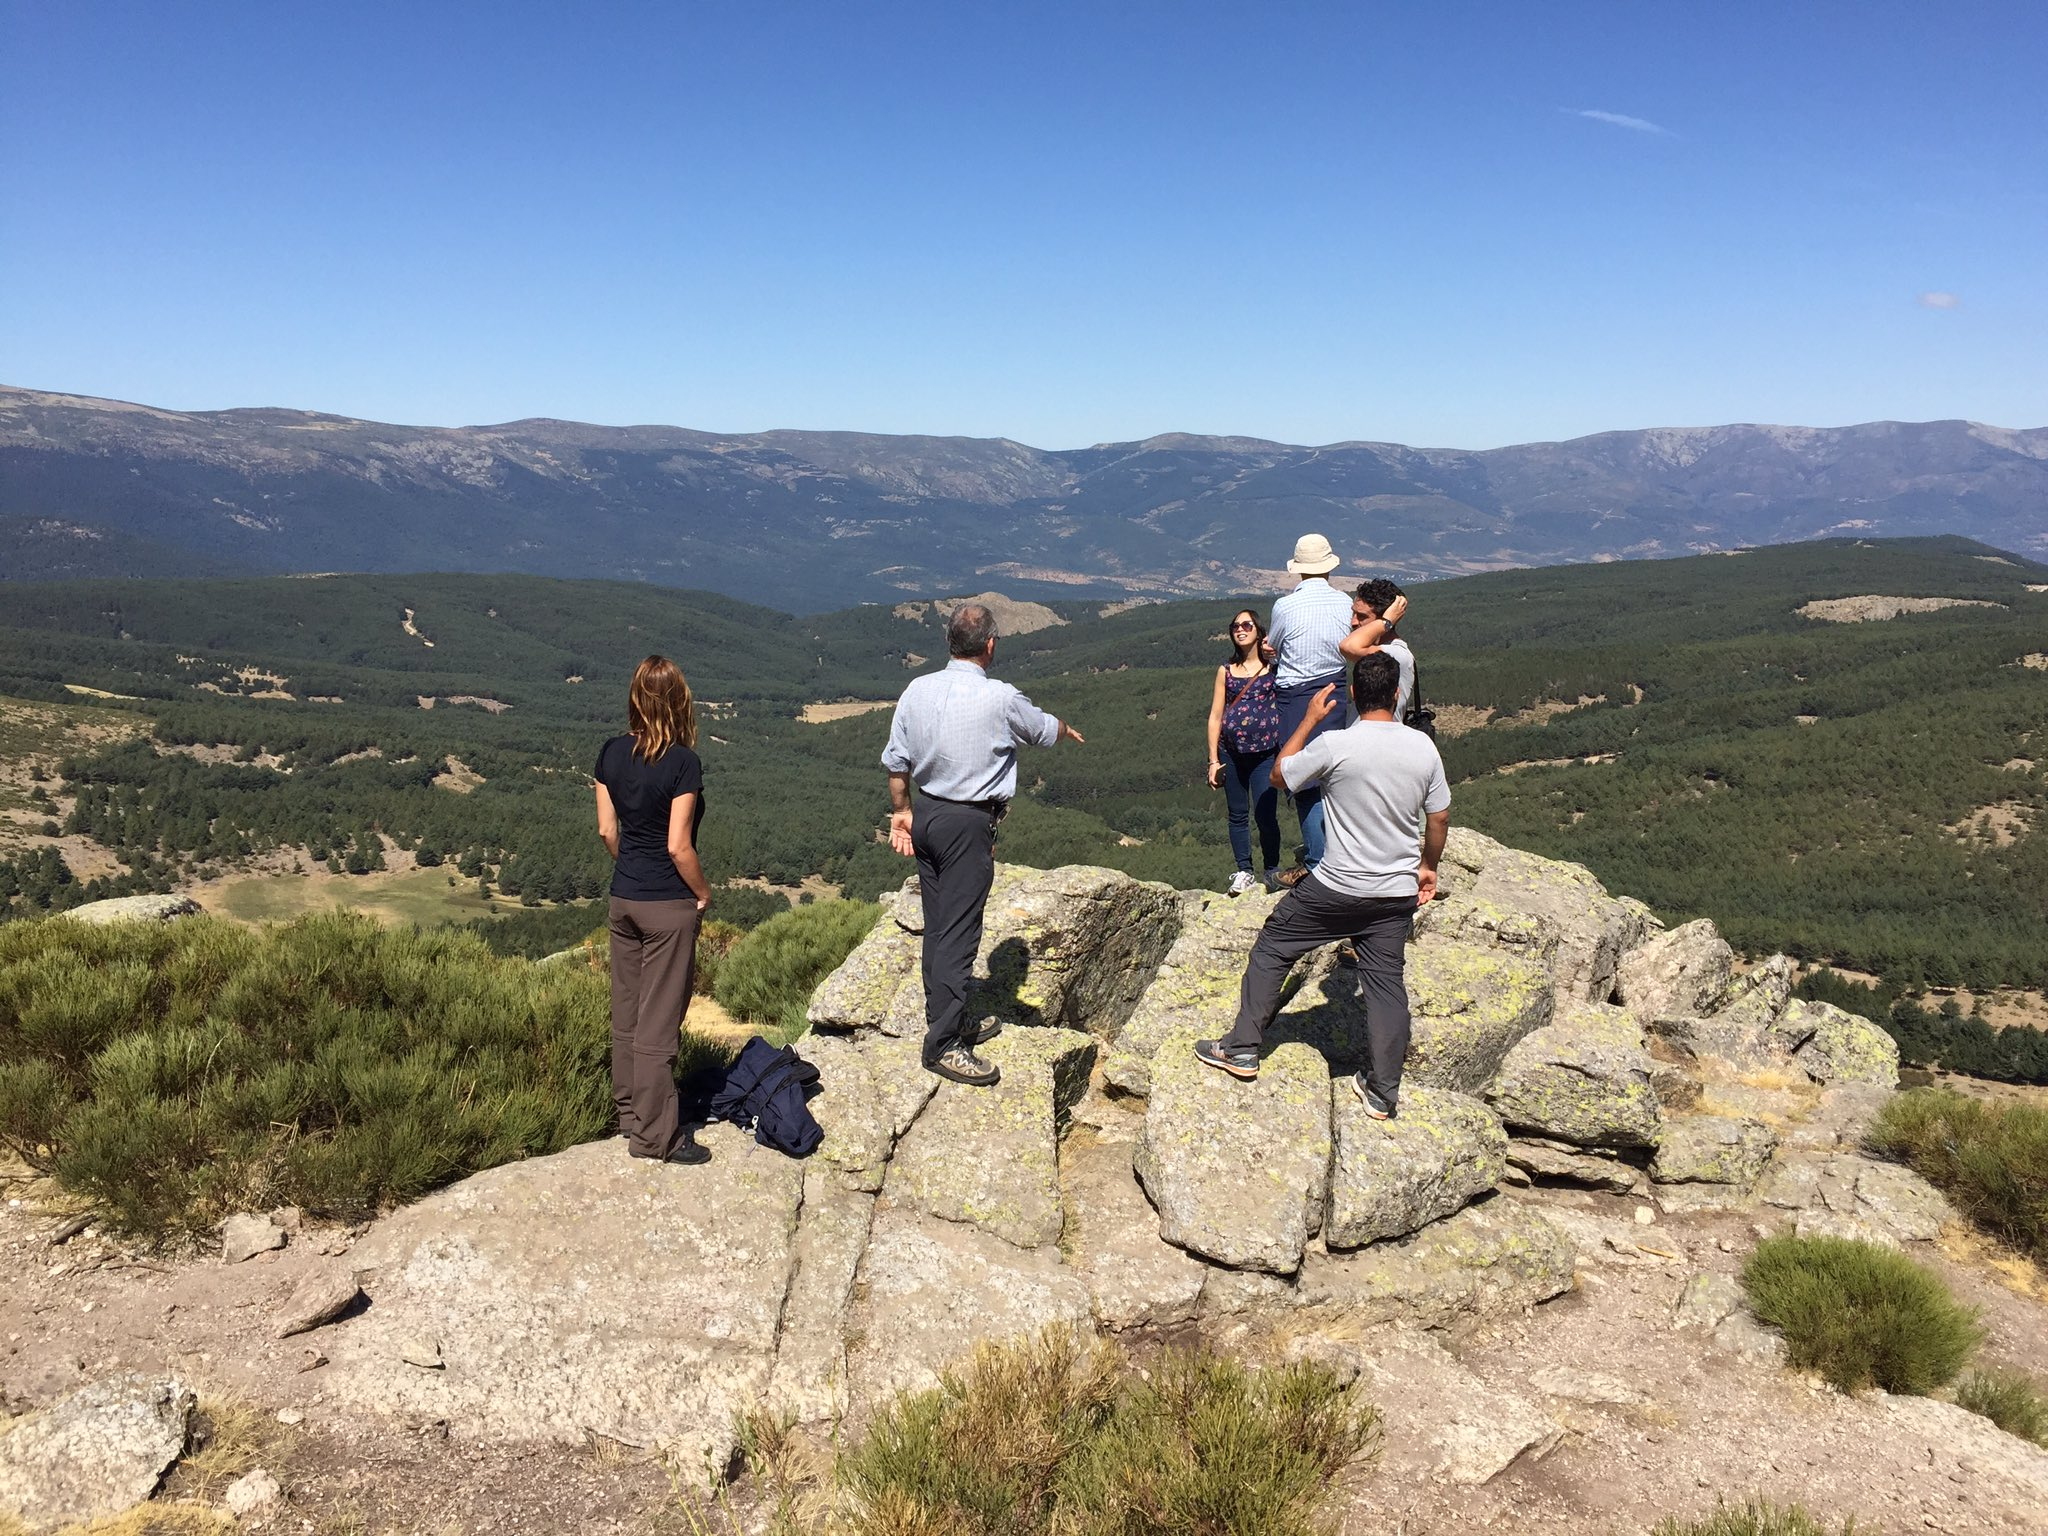 Initial findings from the Sierra de Guadarrama National Park